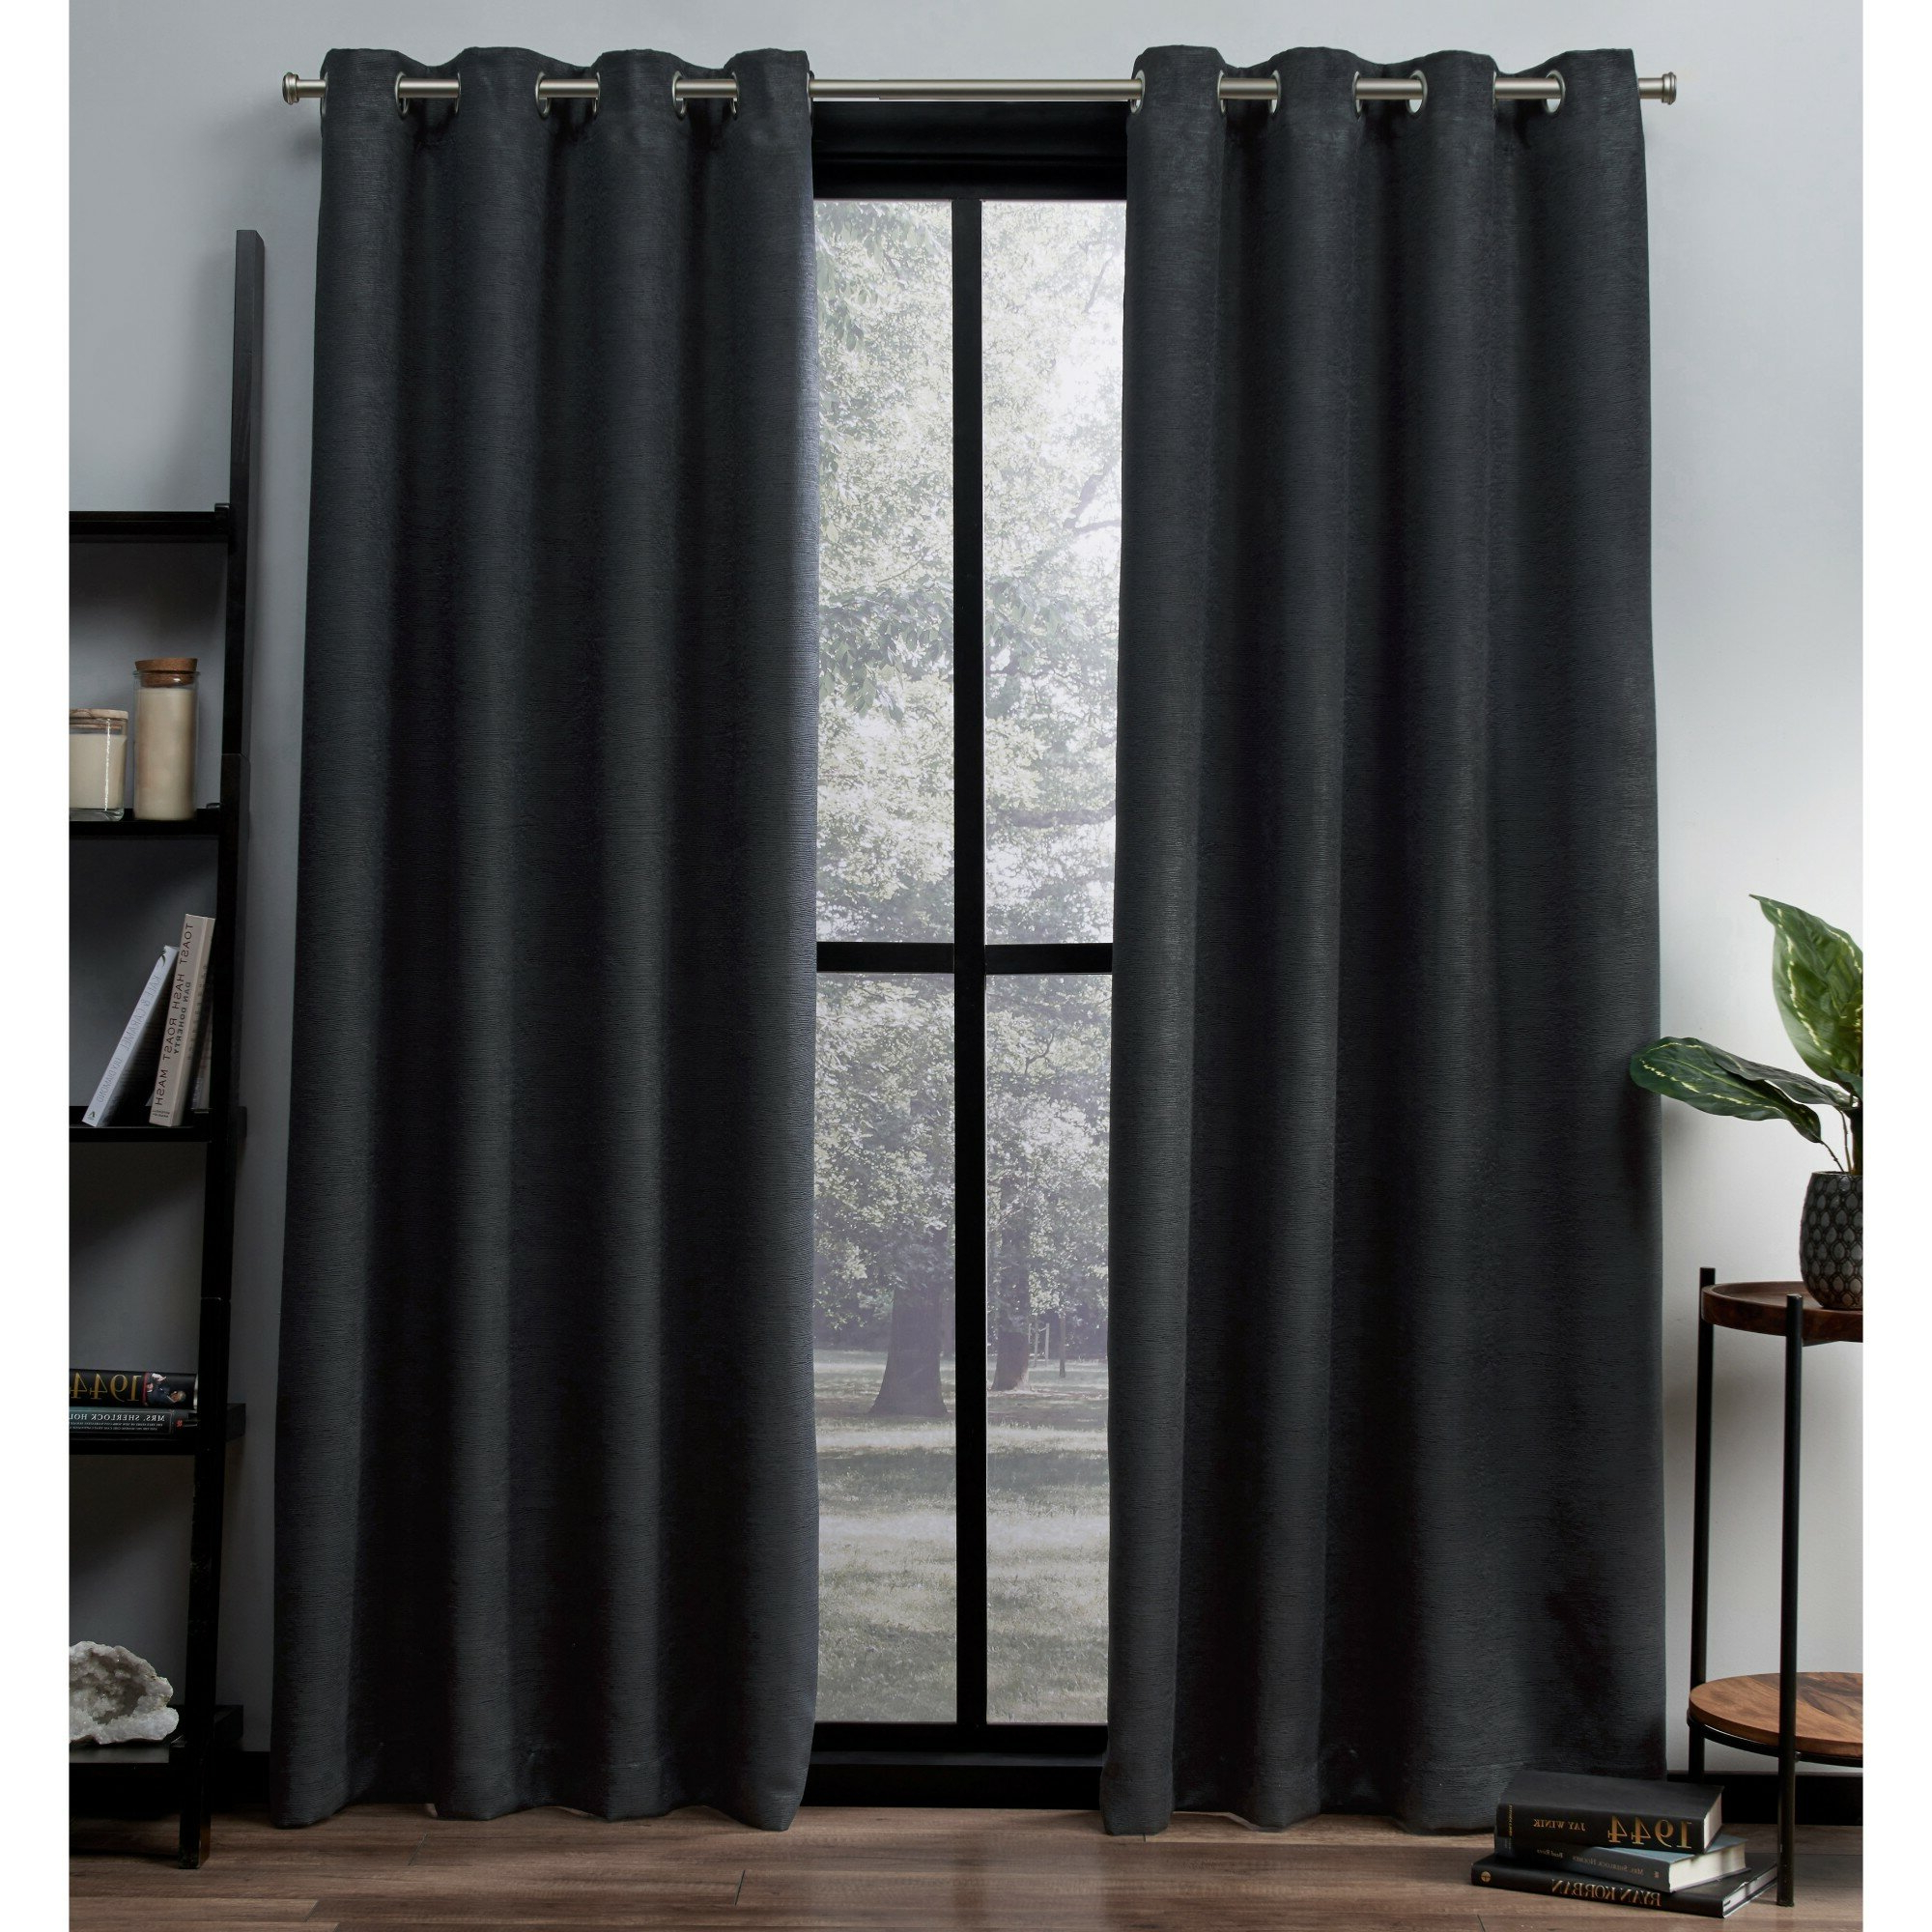 Grommet Room Darkening Curtain Panels With Most Recently Released Meadow Solid Color Room Darkening Thermal Grommet Curtain Panels (View 9 of 20)